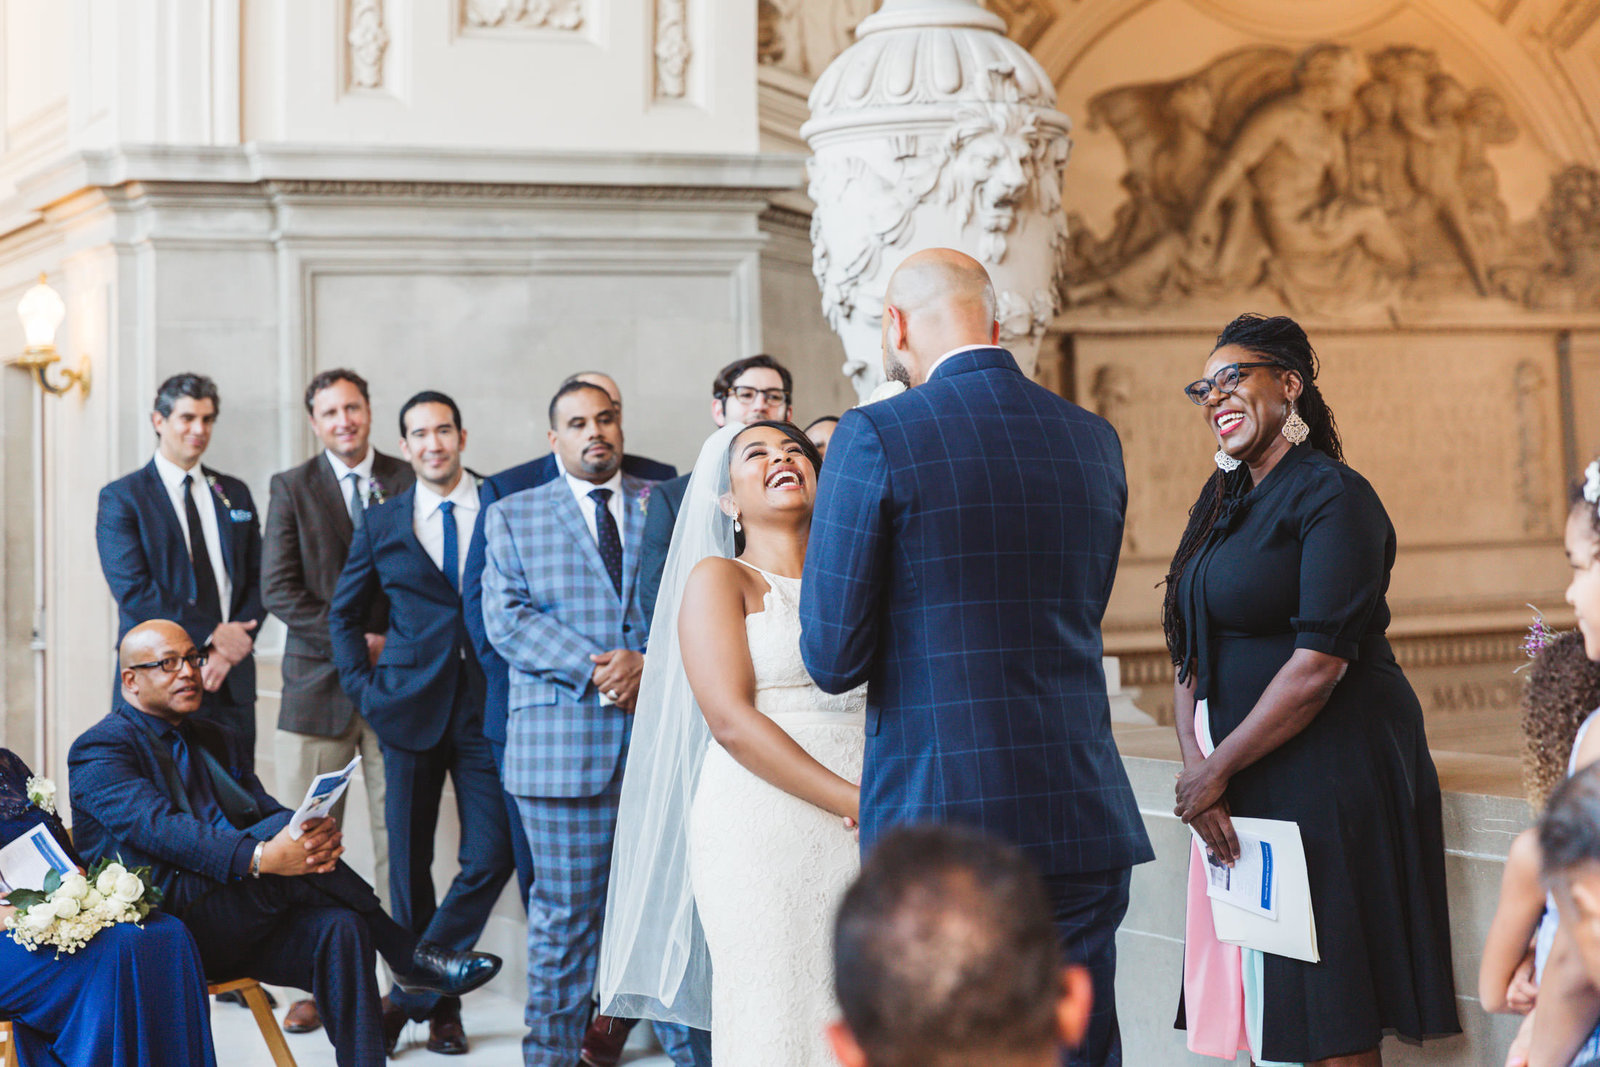 large 4th floor wedding held at san francisco city hall as bride laughs